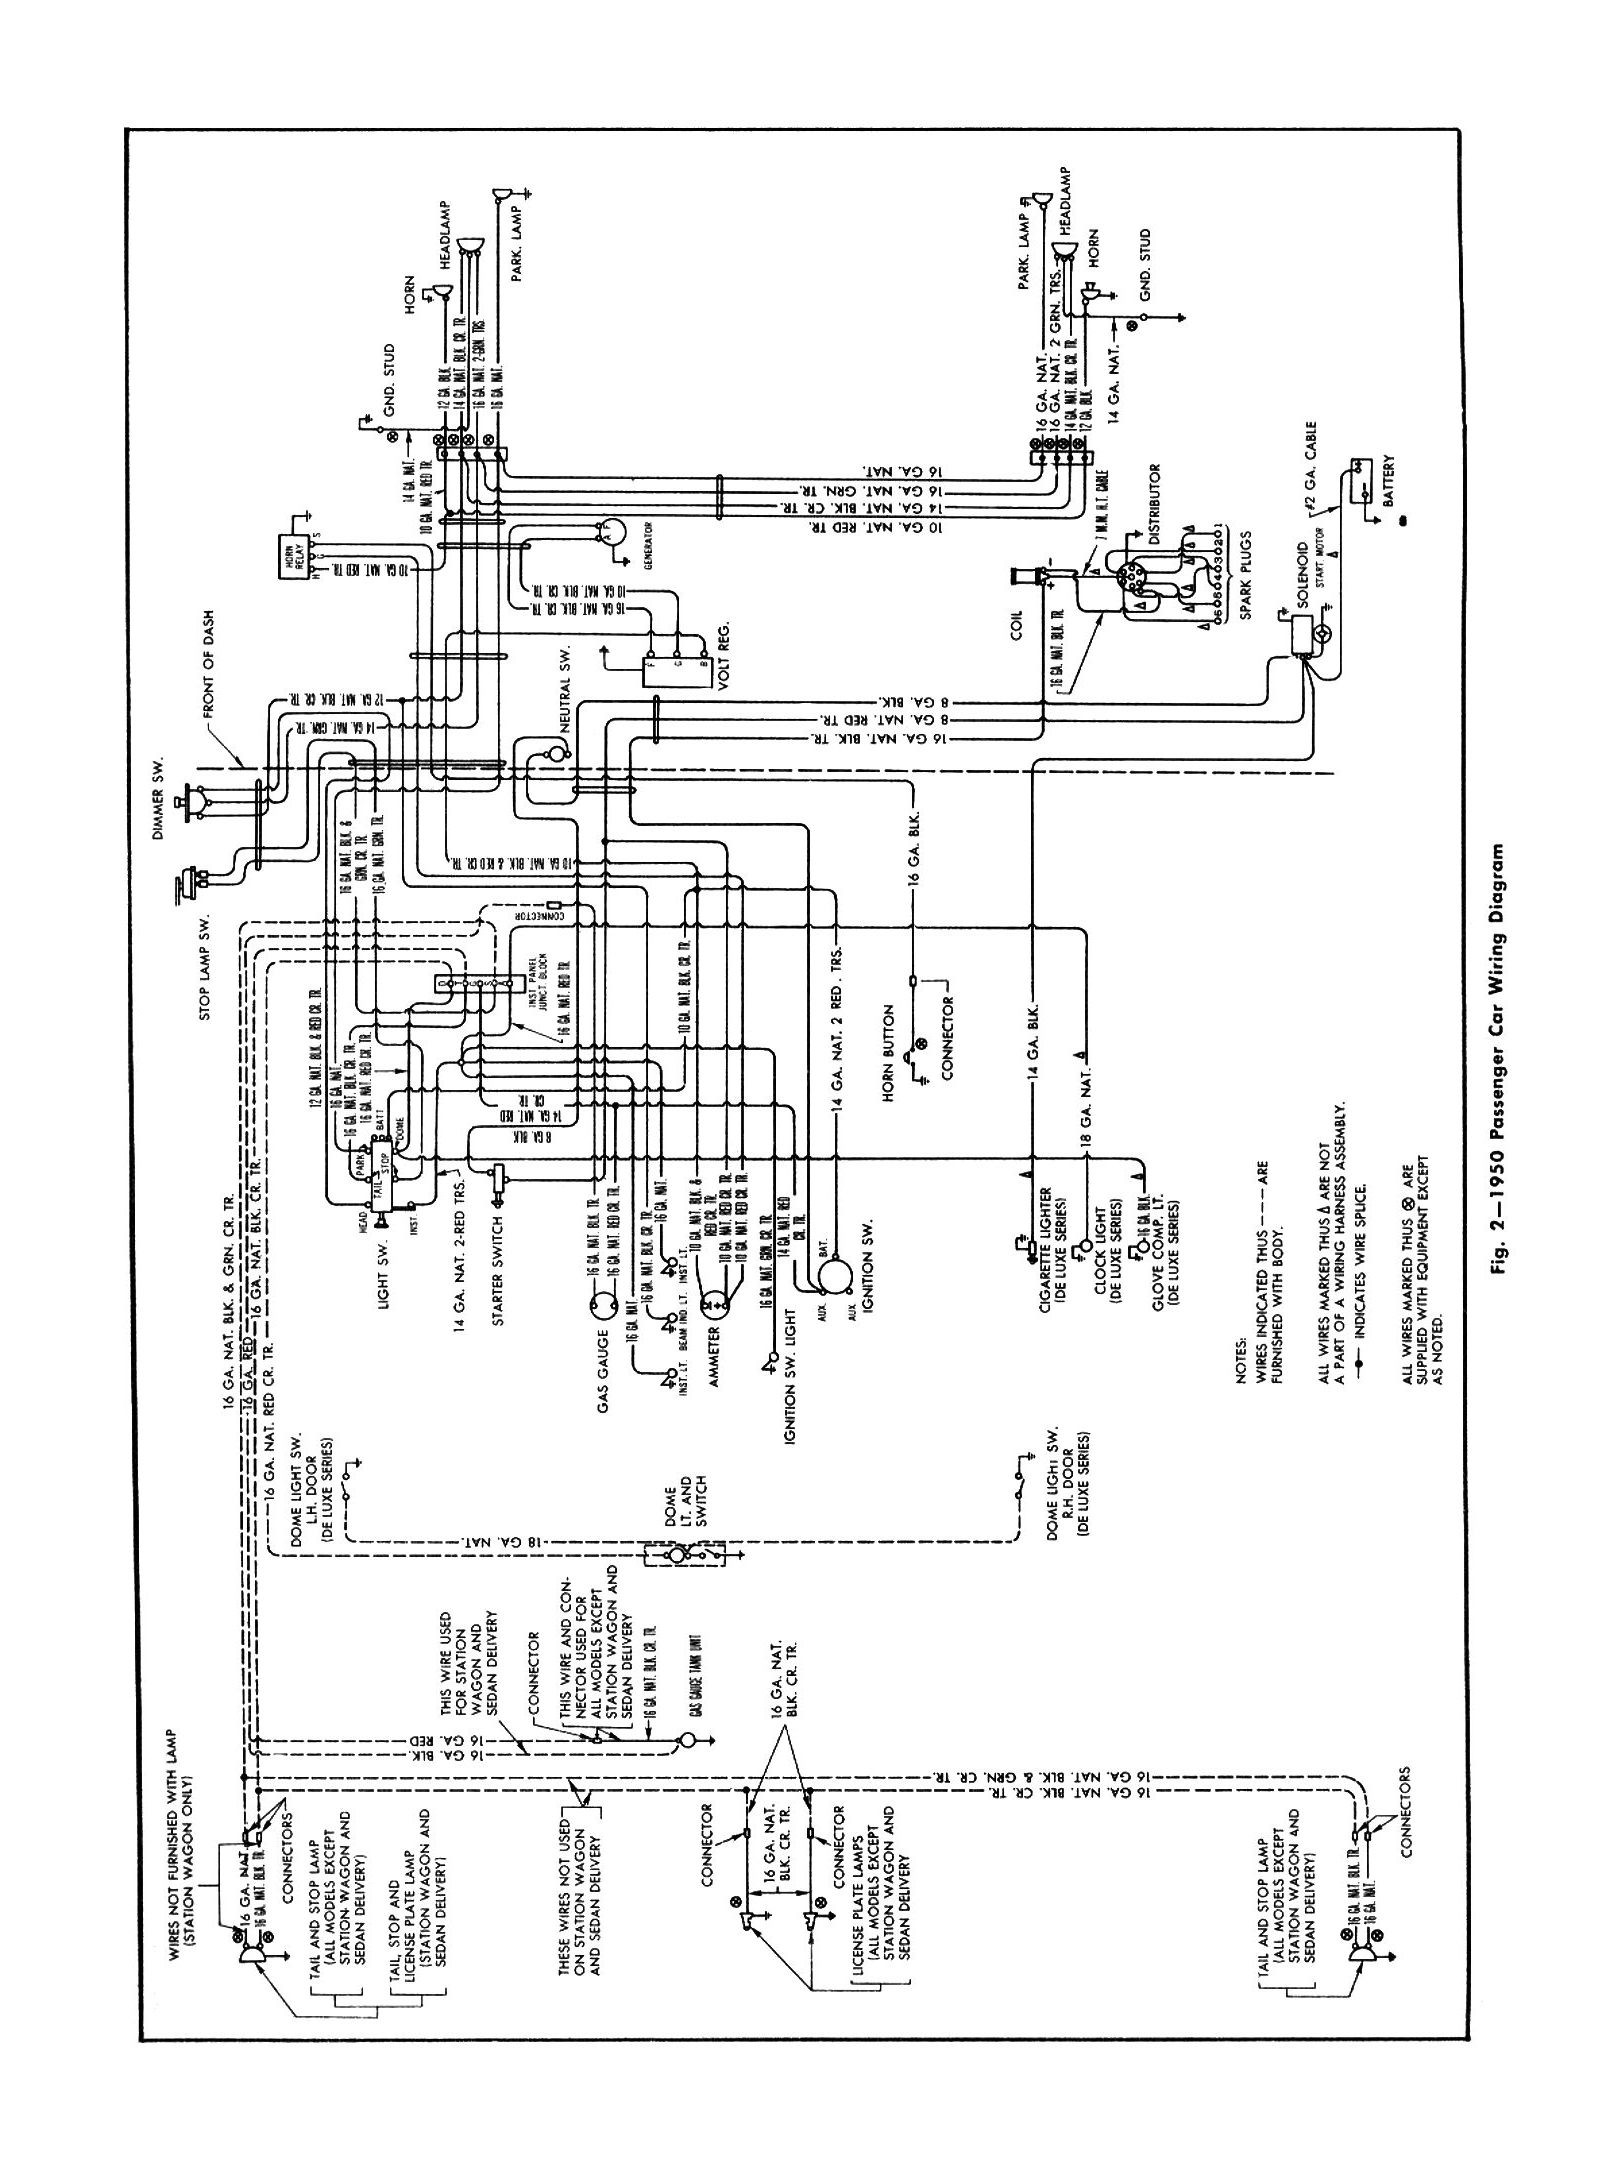 Chevy Wiring Diagrams Diagram In Addition House Circuits 1950 Car General